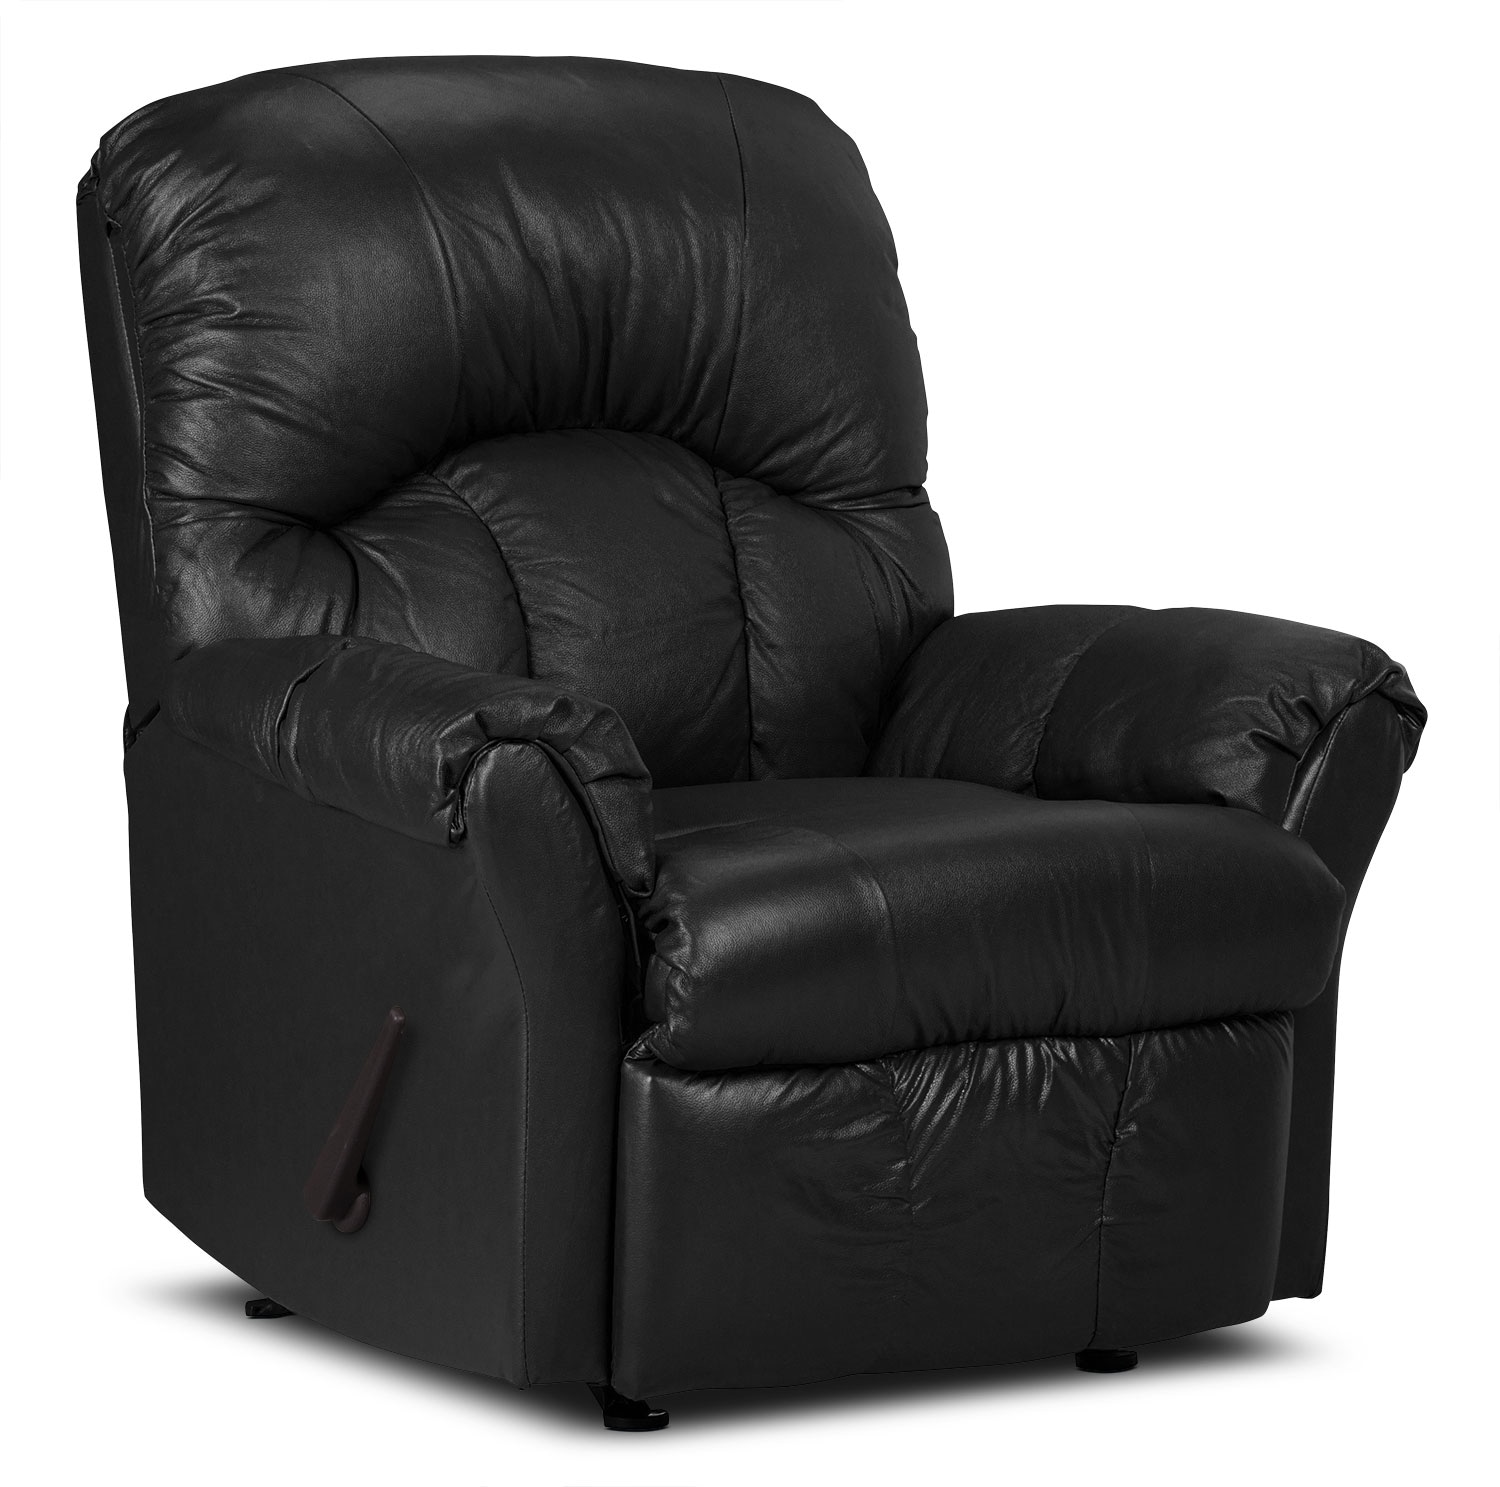 Designed2B Recliner 6734 Genuine Leather Rocker Chair - Black